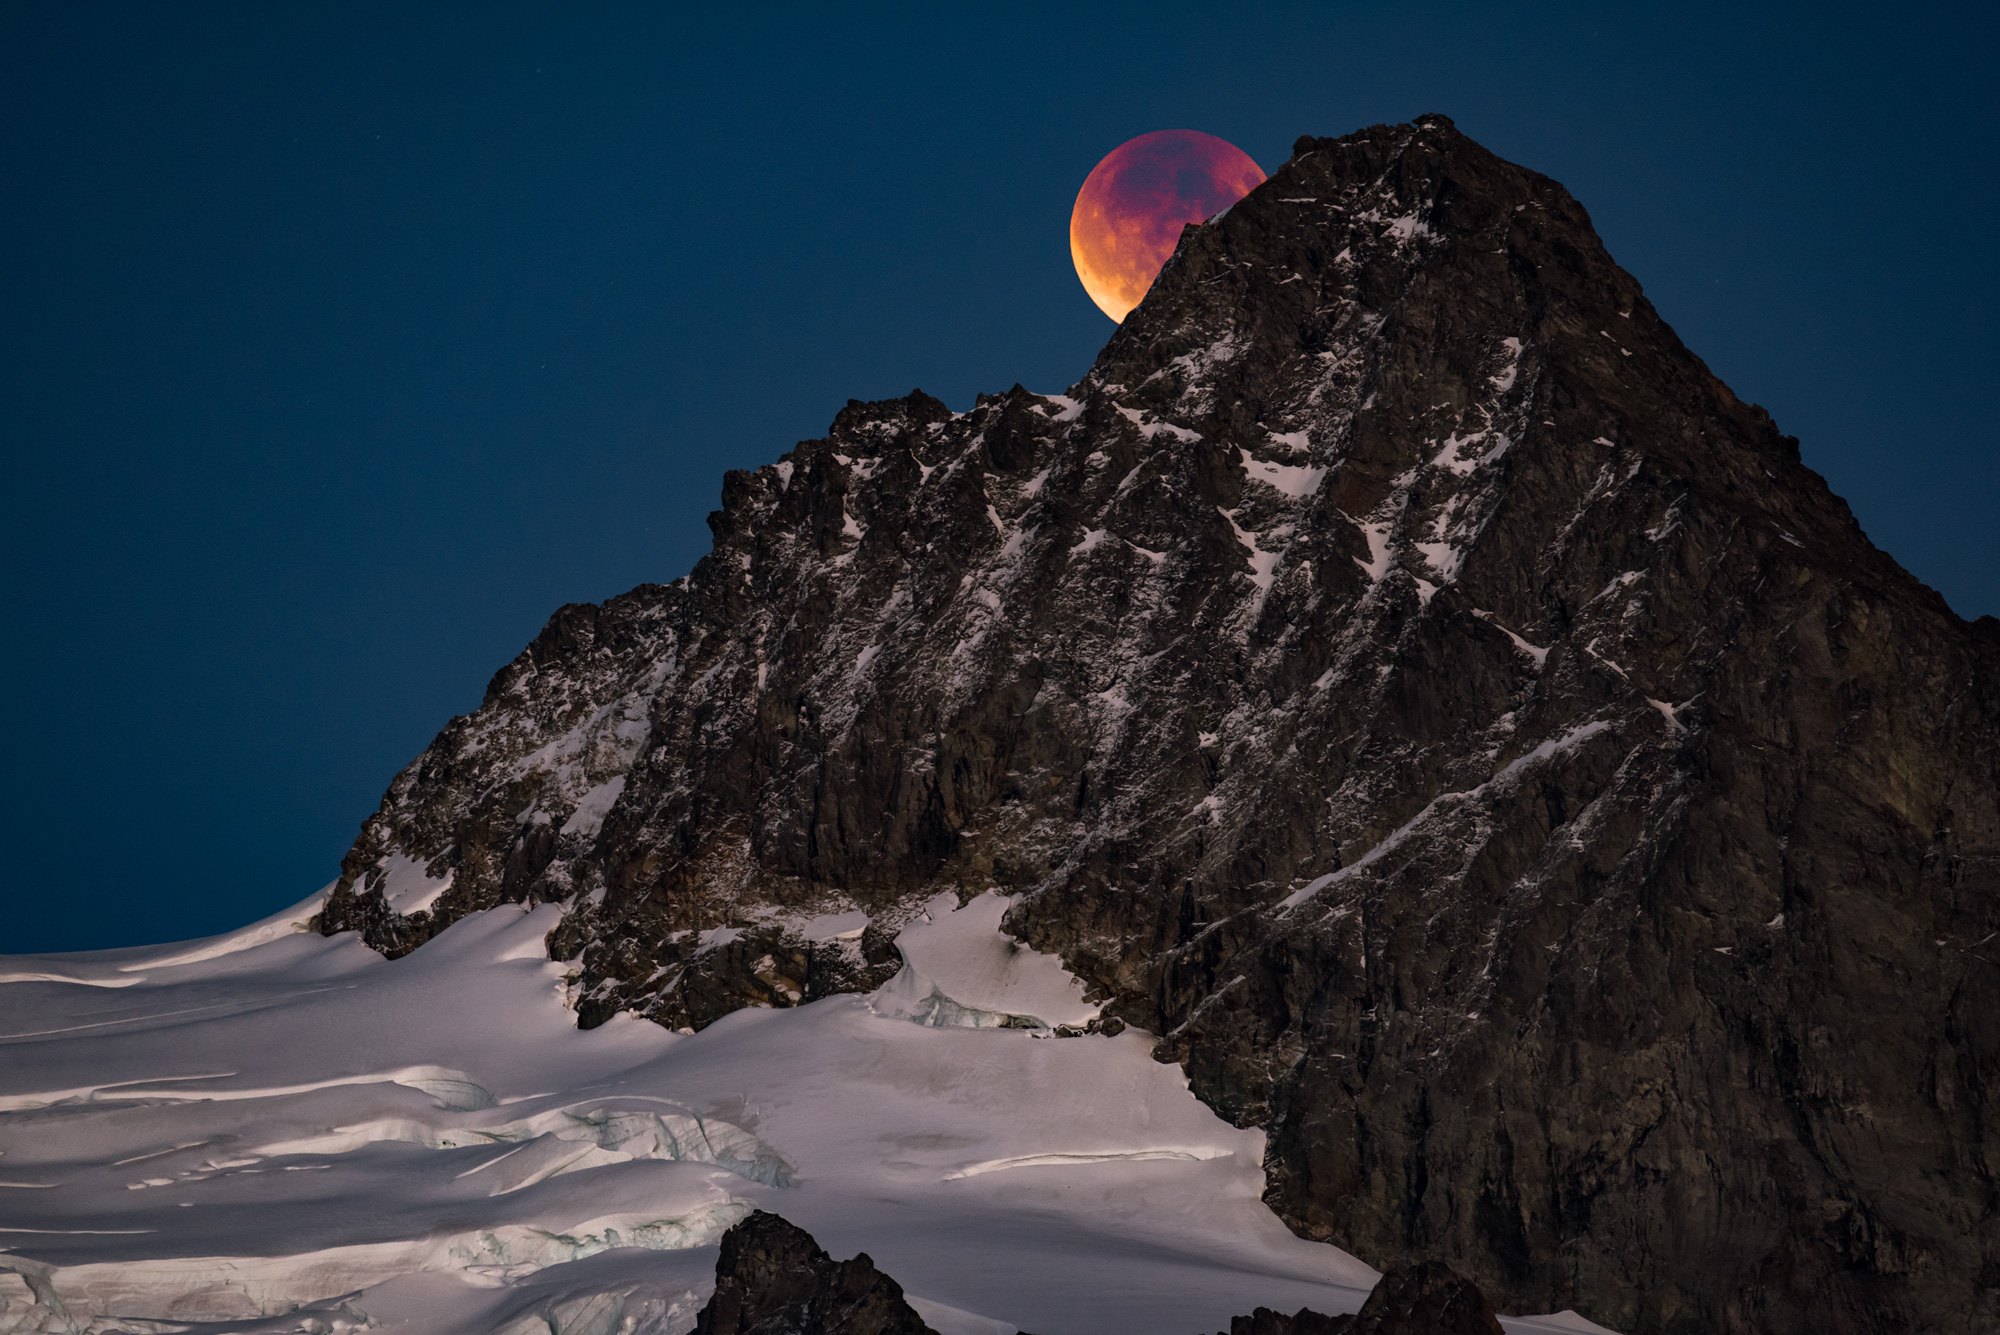 Blood Moon Eclipse over Mount Shuksan [SOLD]  | Artist Point, Washington  16x24 | High gloss metal print with custom shadow mount and hanging wire.  (Click image to enlarge)